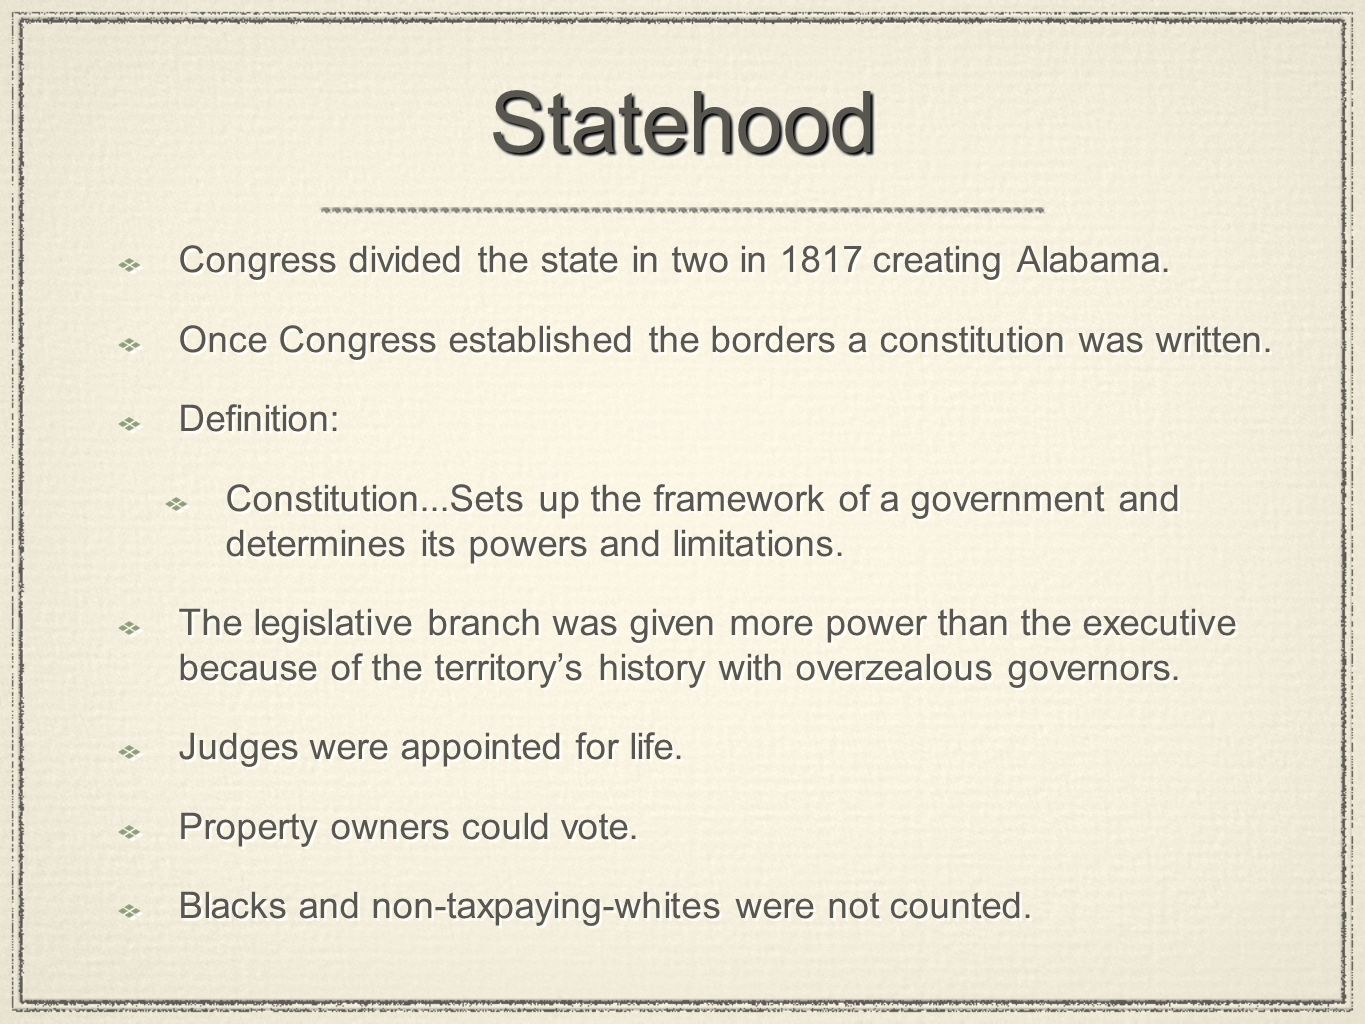 Statehood Congress divided the state in two in 1817 creating Alabama.